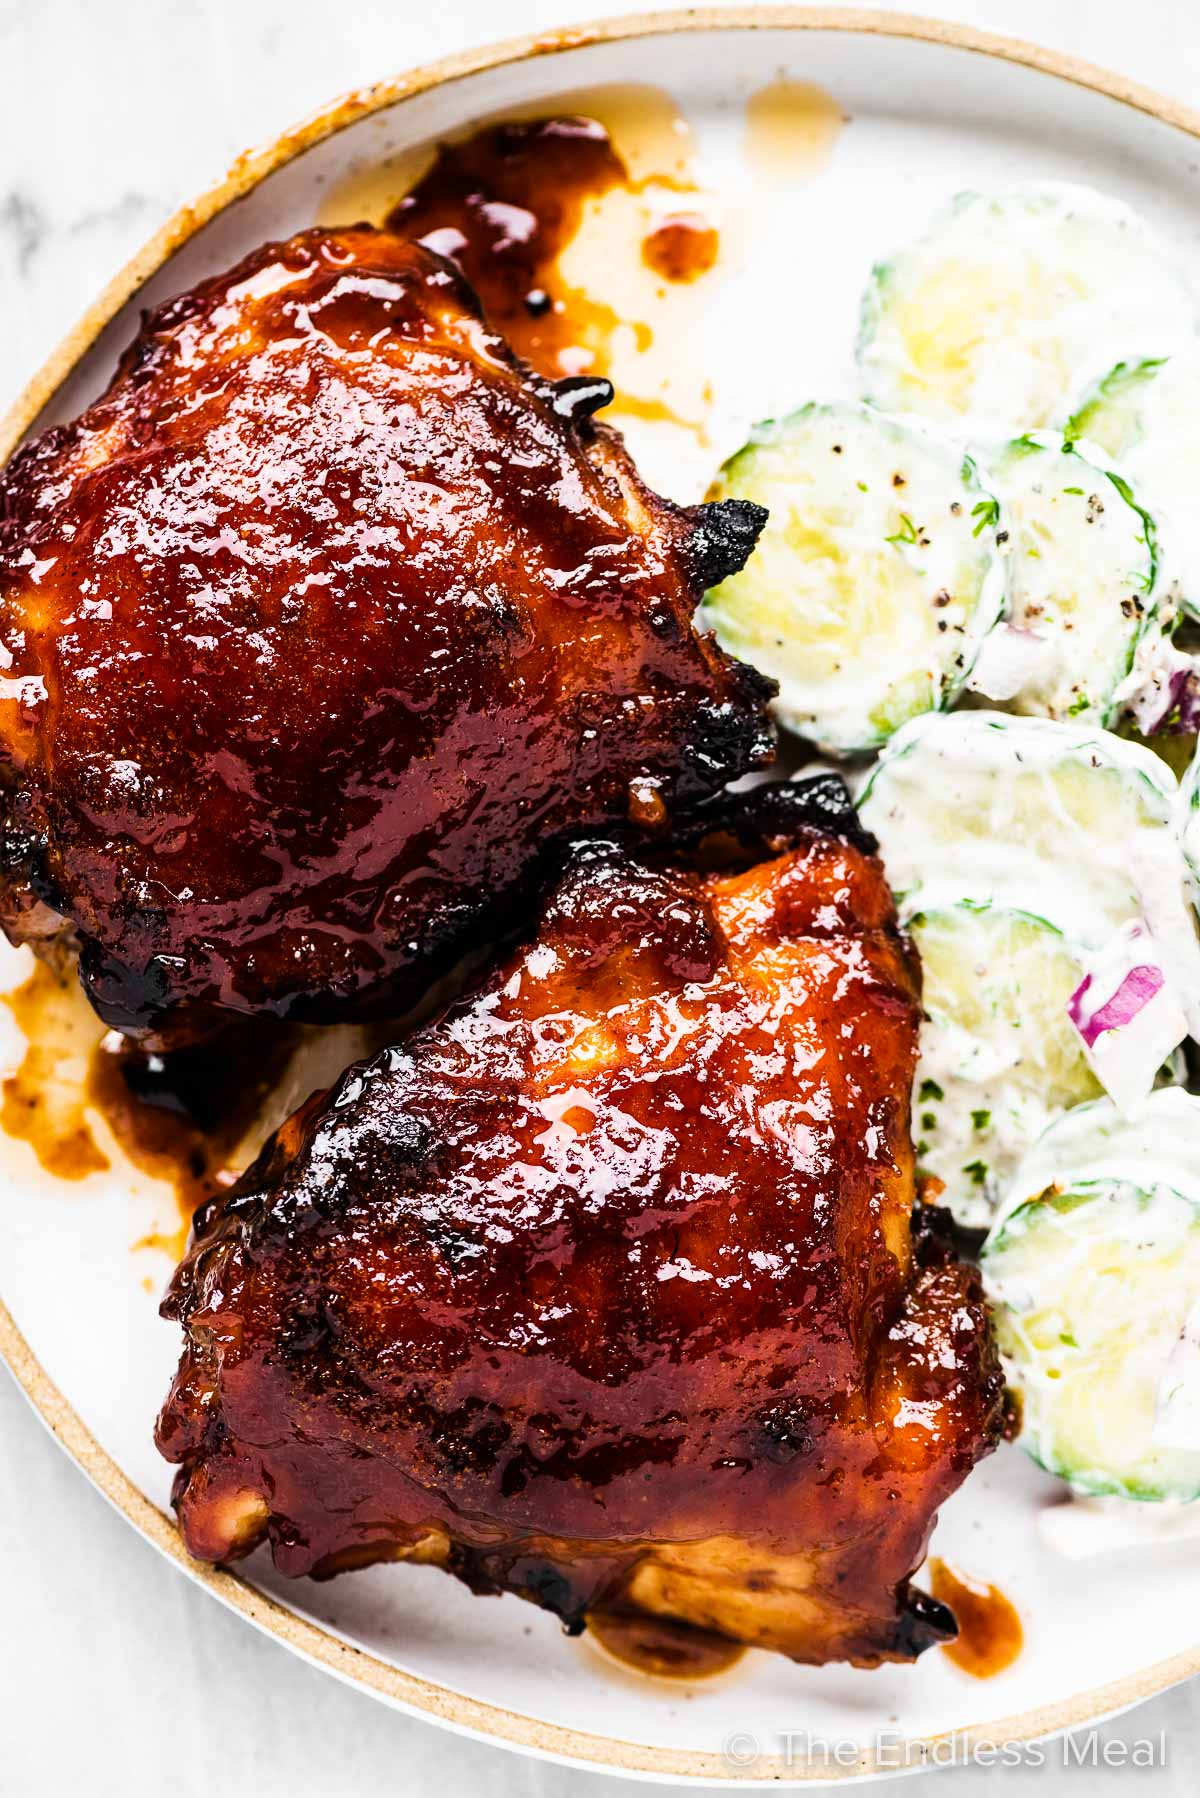 Two pieces of baked bbq chicken on a white plate with a side of cucumber salad.